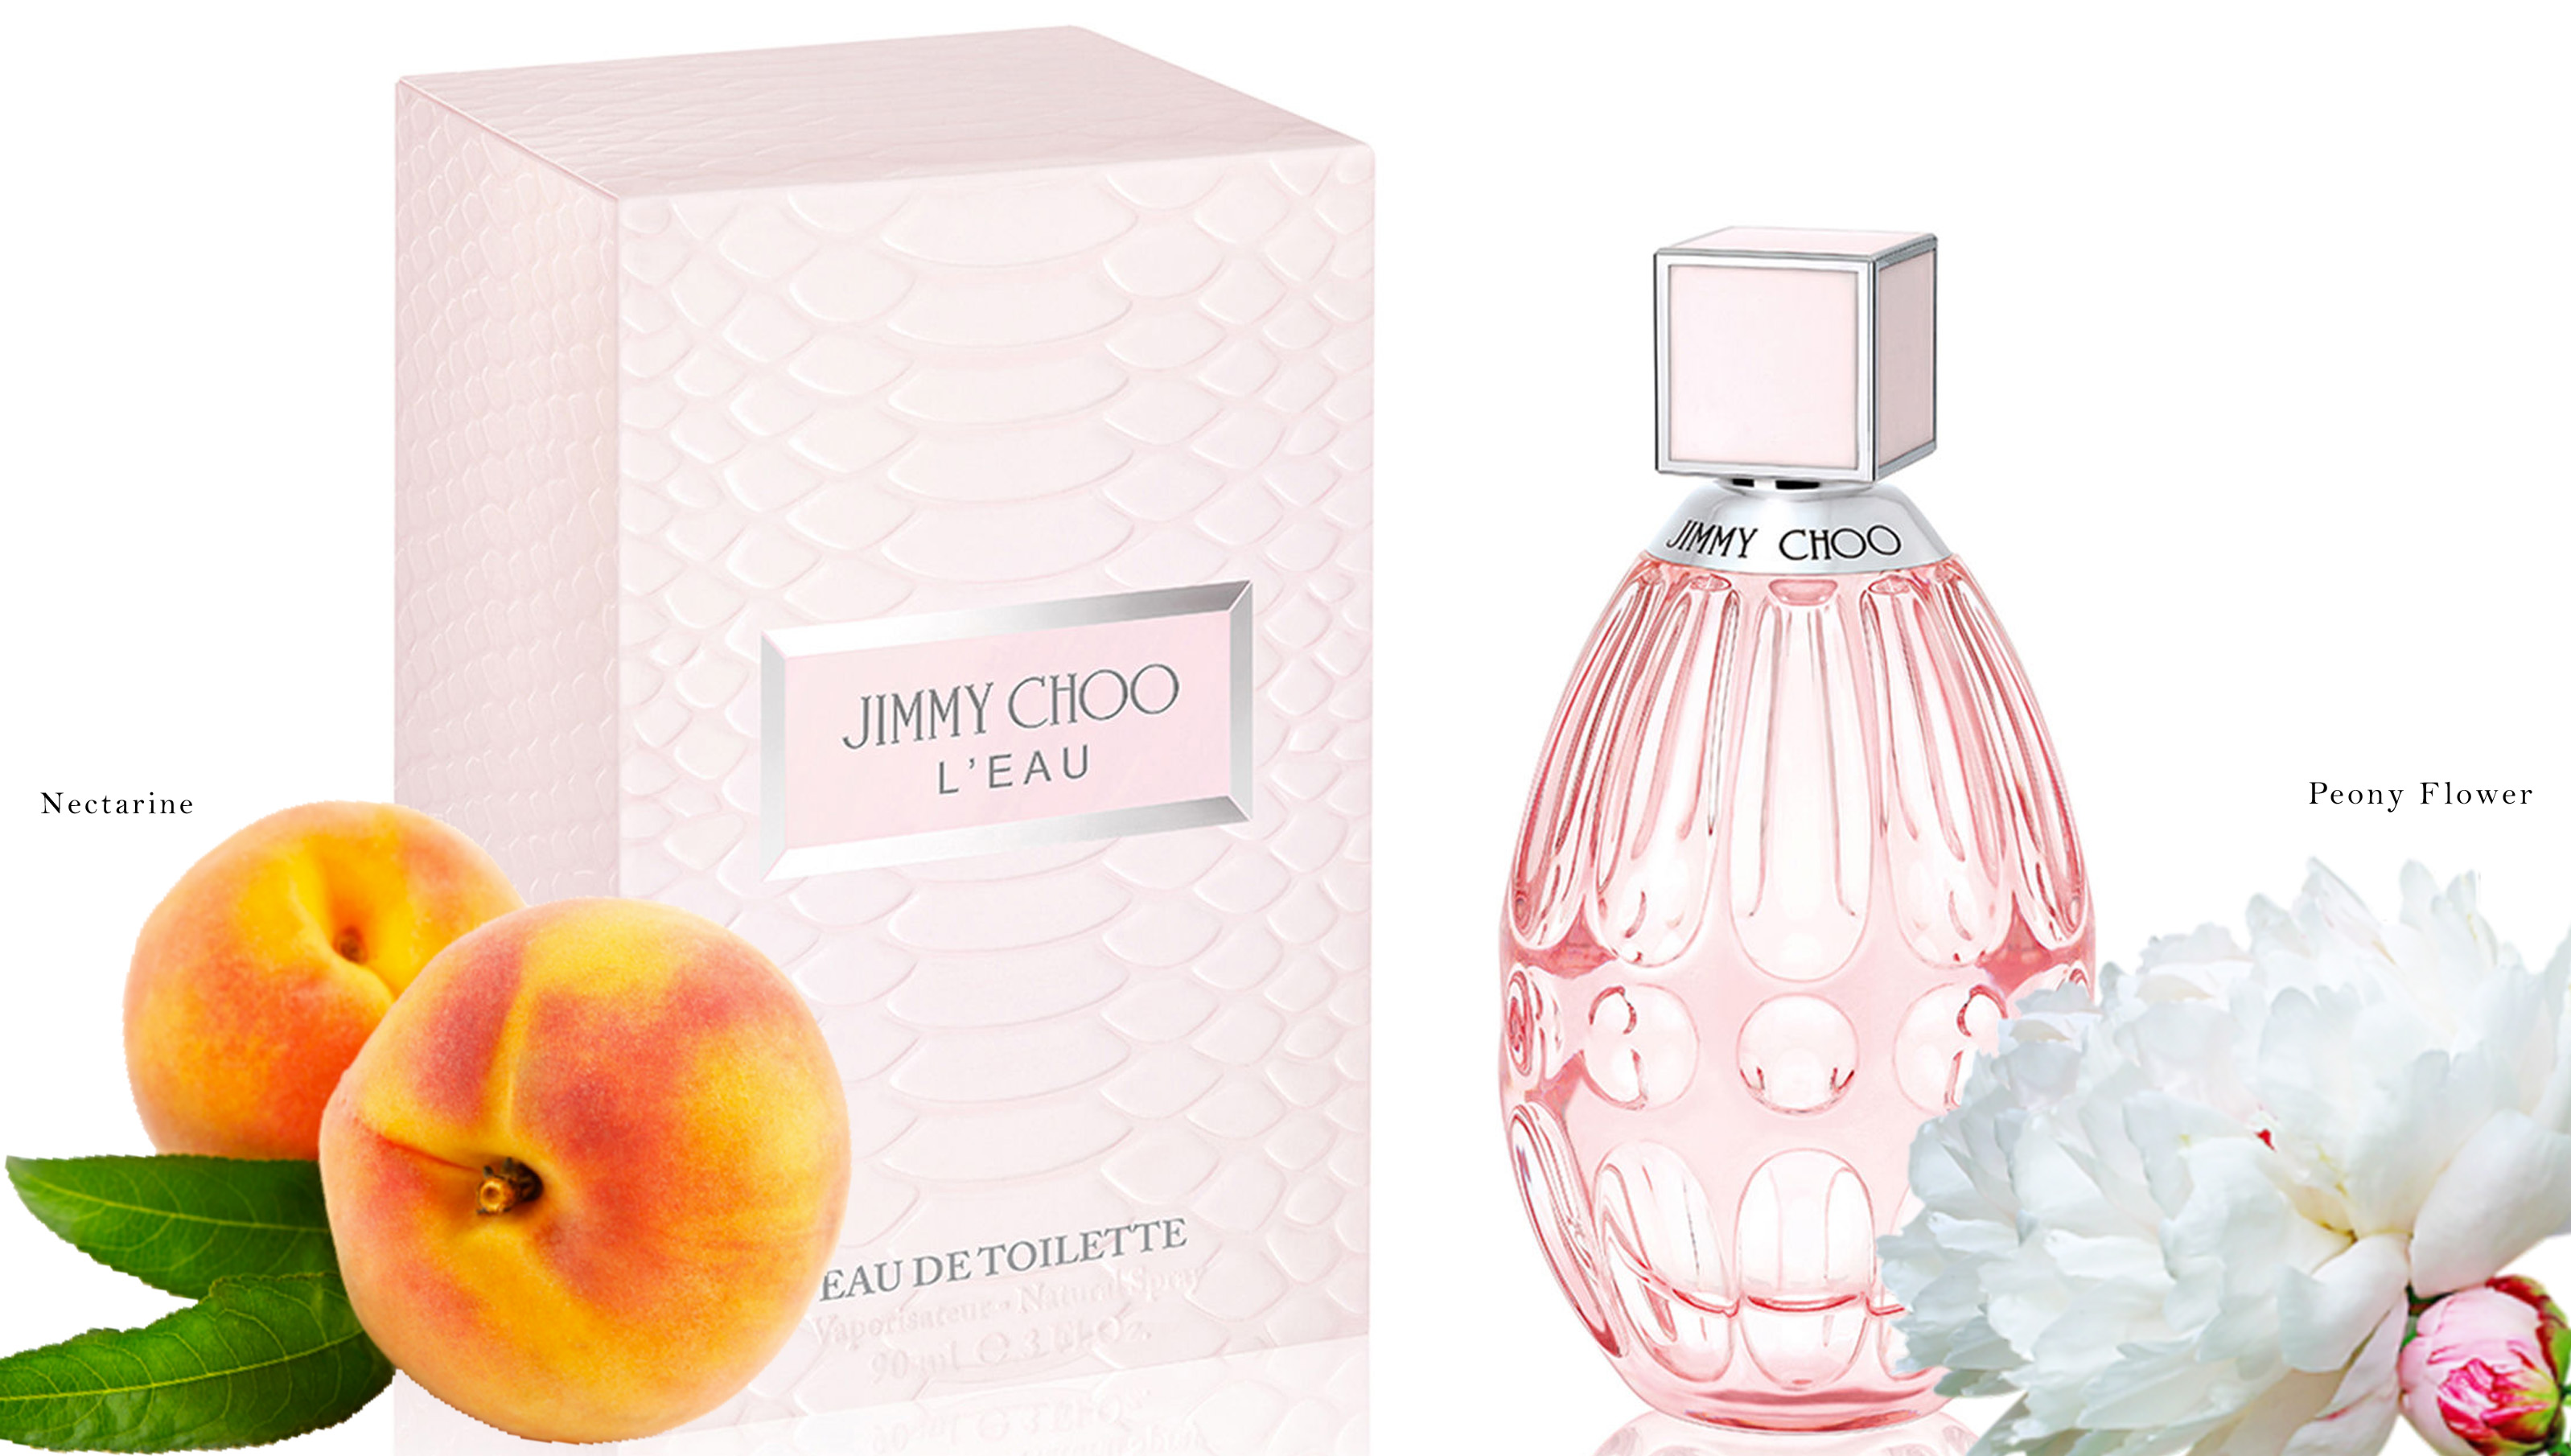 jimmy choo l'eau fragrance